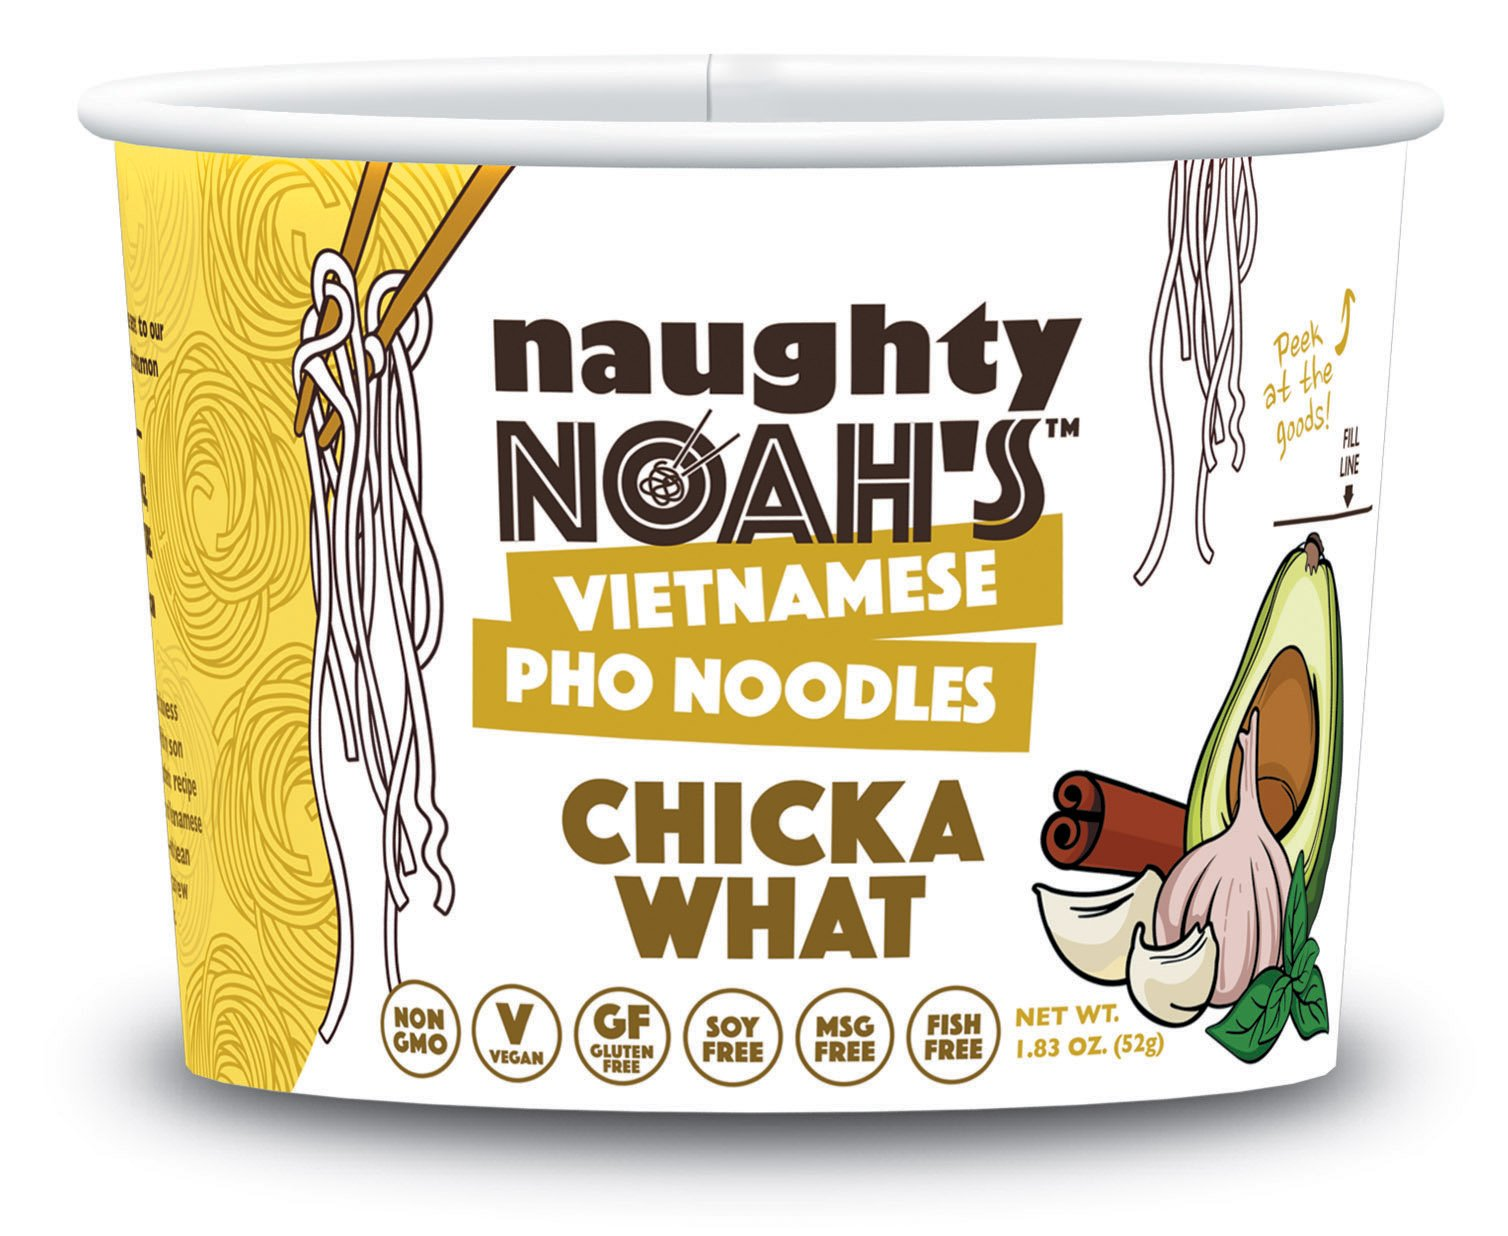 Naughty Noah's Vietnamese Pho Noodles   Chicka What Flavor (6-pack)   Vegan   Non-GMO   Noodle Bowl by Naughty Noah's Vietnamese